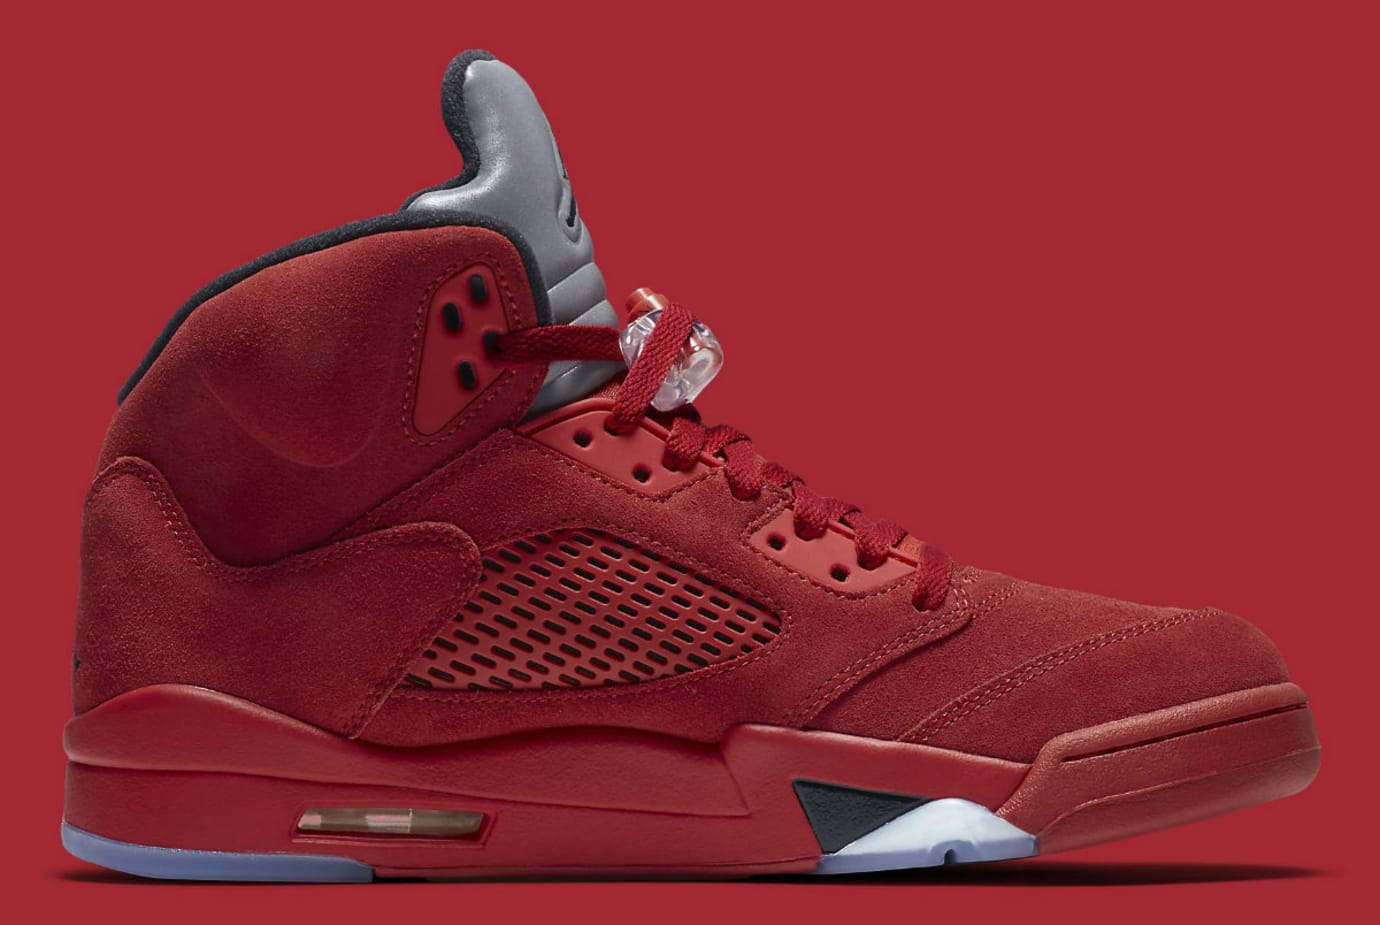 Air Jordan 5 Red Suede Release Date Medial 136027-602